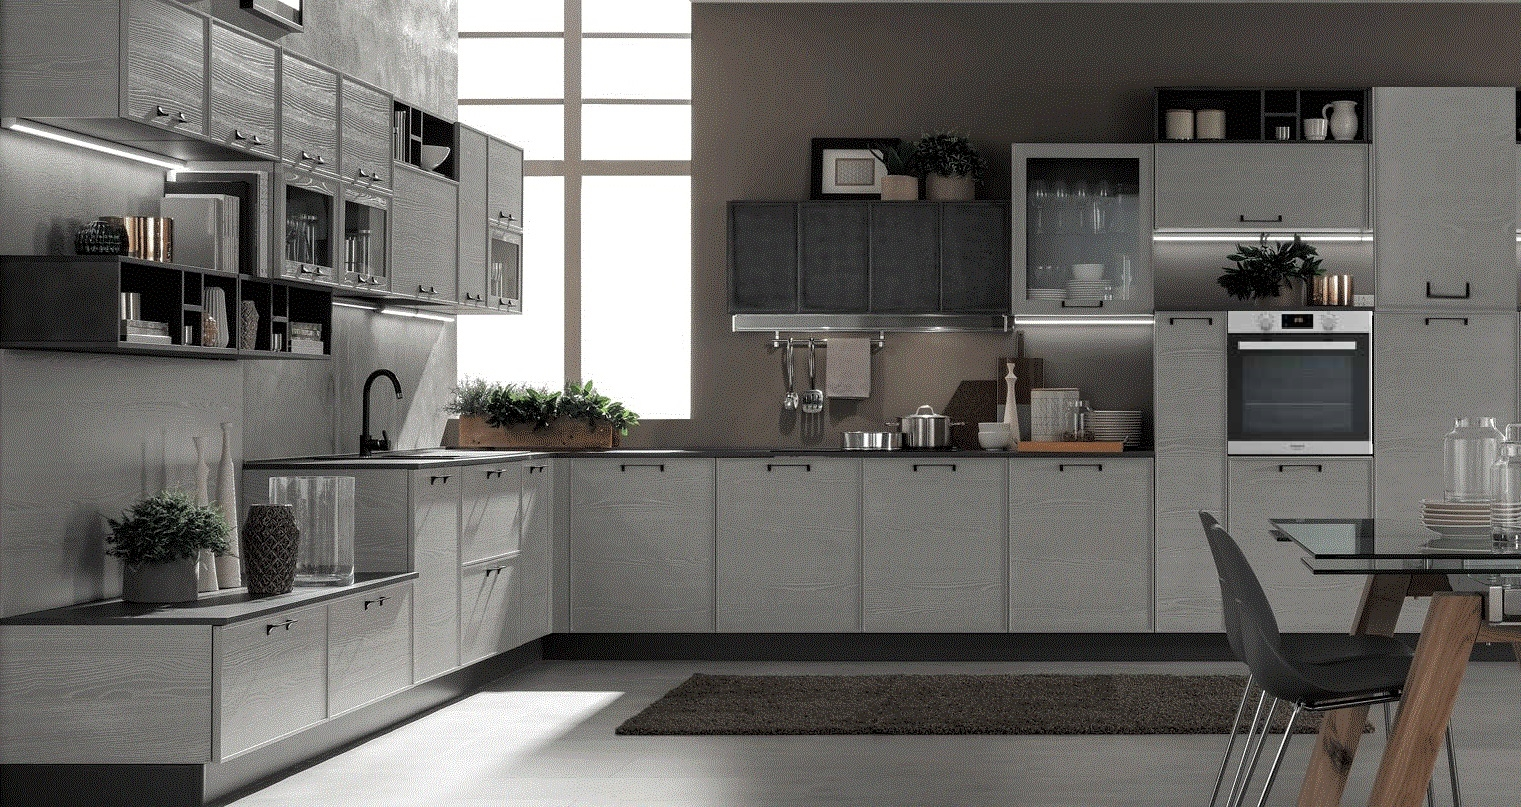 Outlet cucine roma offerte stunning euromobil prezzi outlet offerte e sconti euromobil cucine - Outlet cucine roma ...